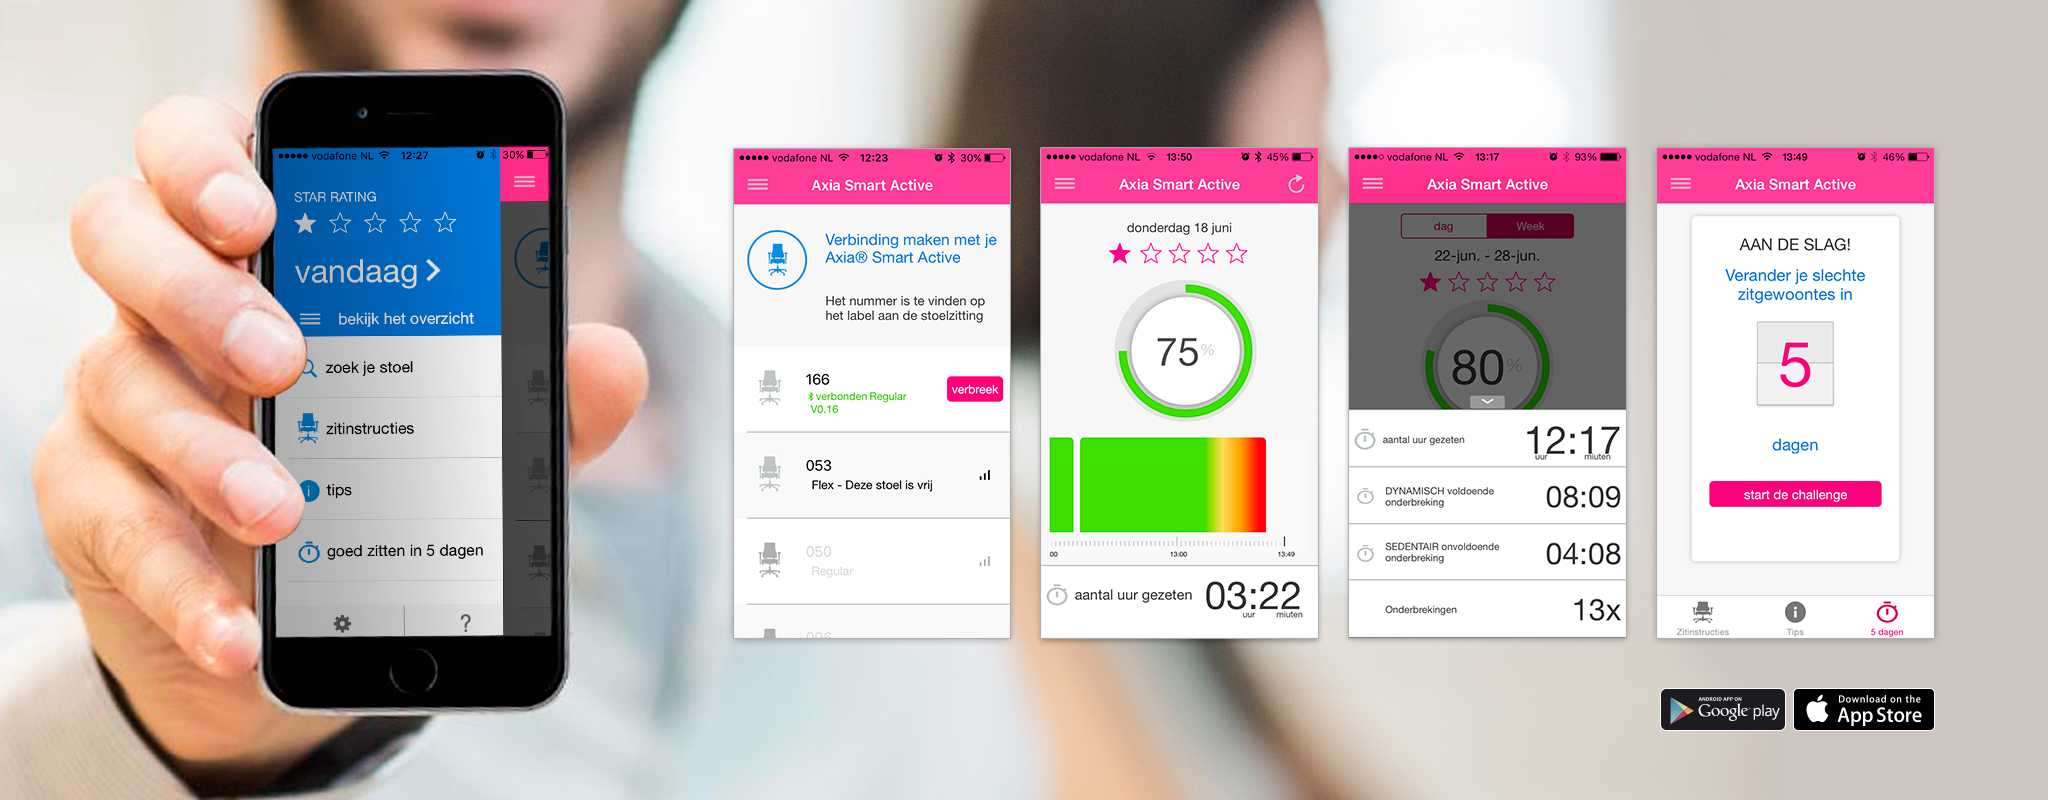 Download de Axia Smart Active App